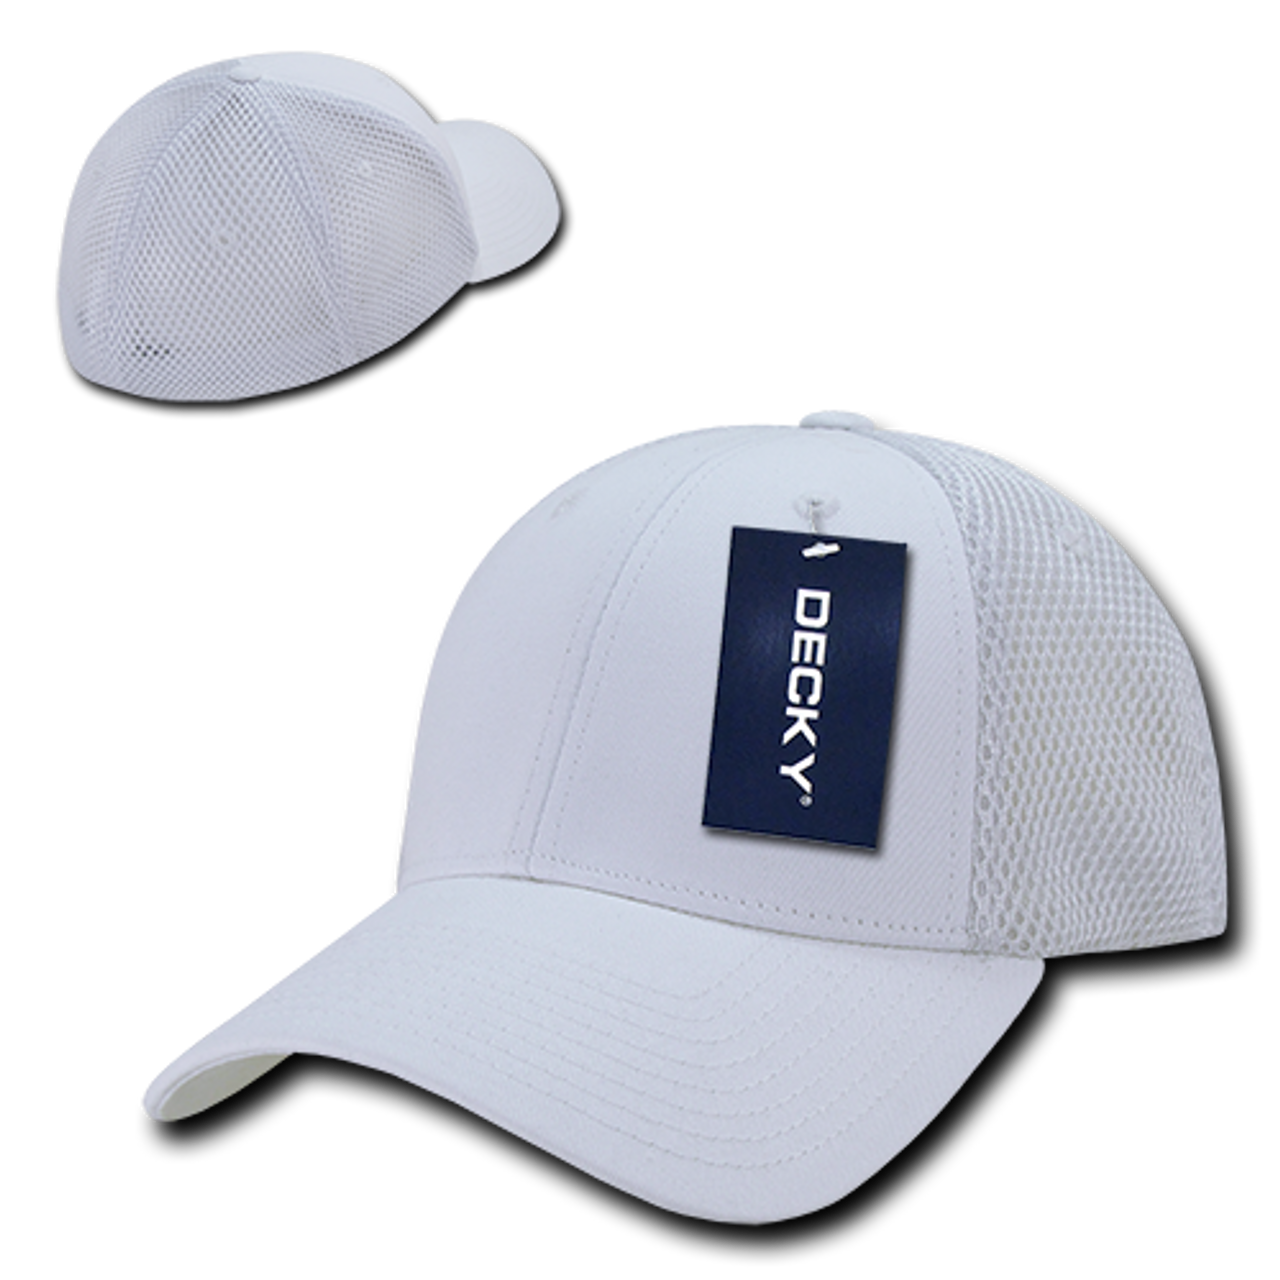 8585effef Air Mesh Flex Baseball Cap - White/White